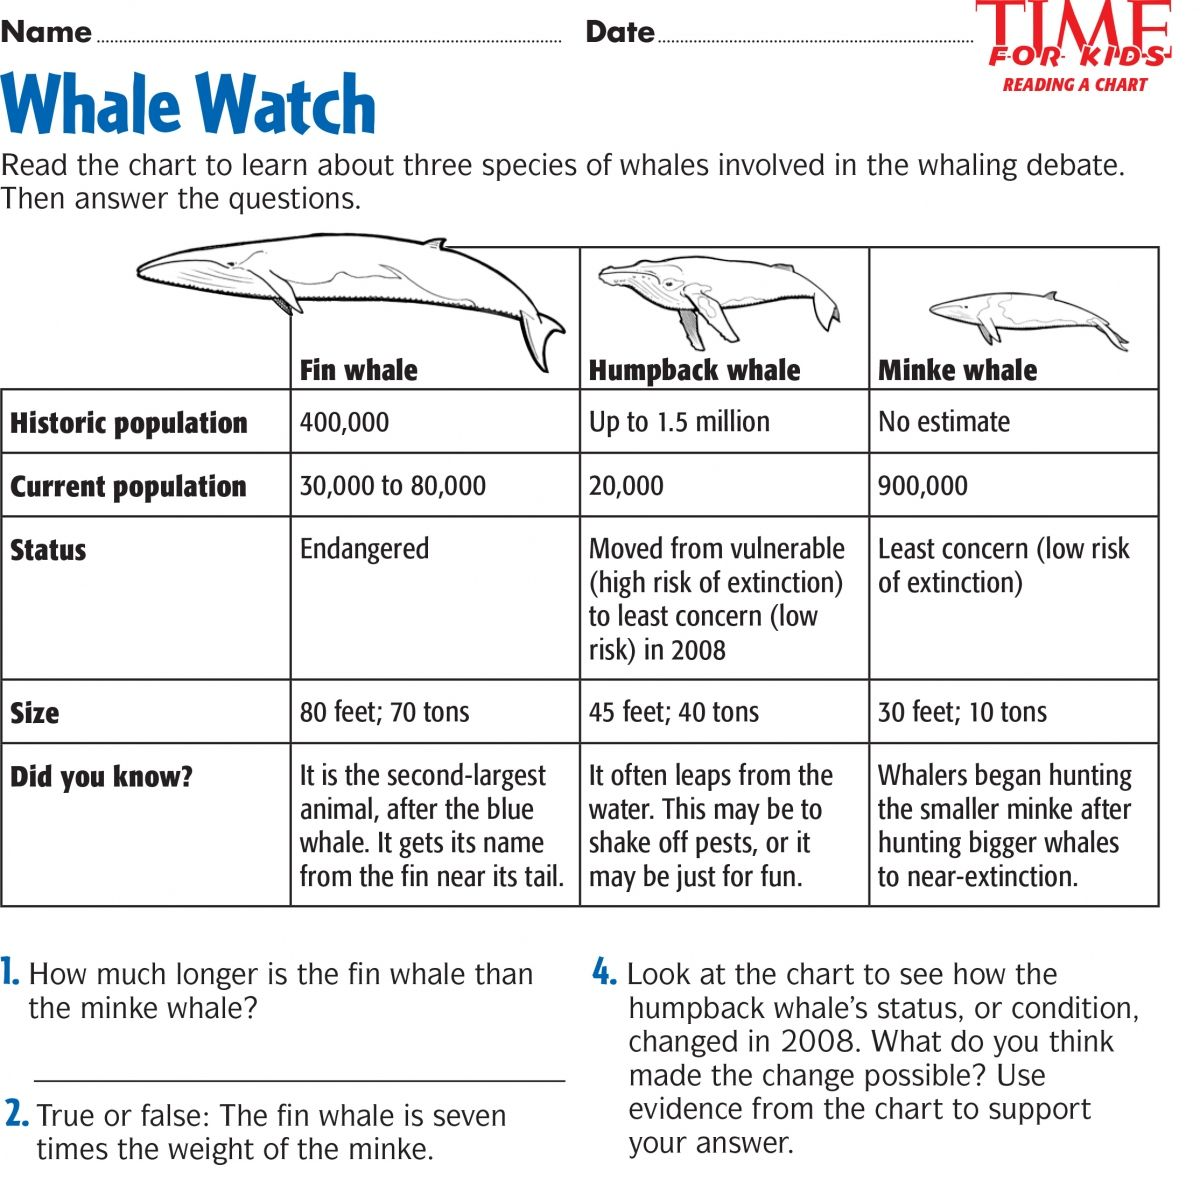 Whale Watch Students Read A Chart About Three Species Of Whales And Answer Questions